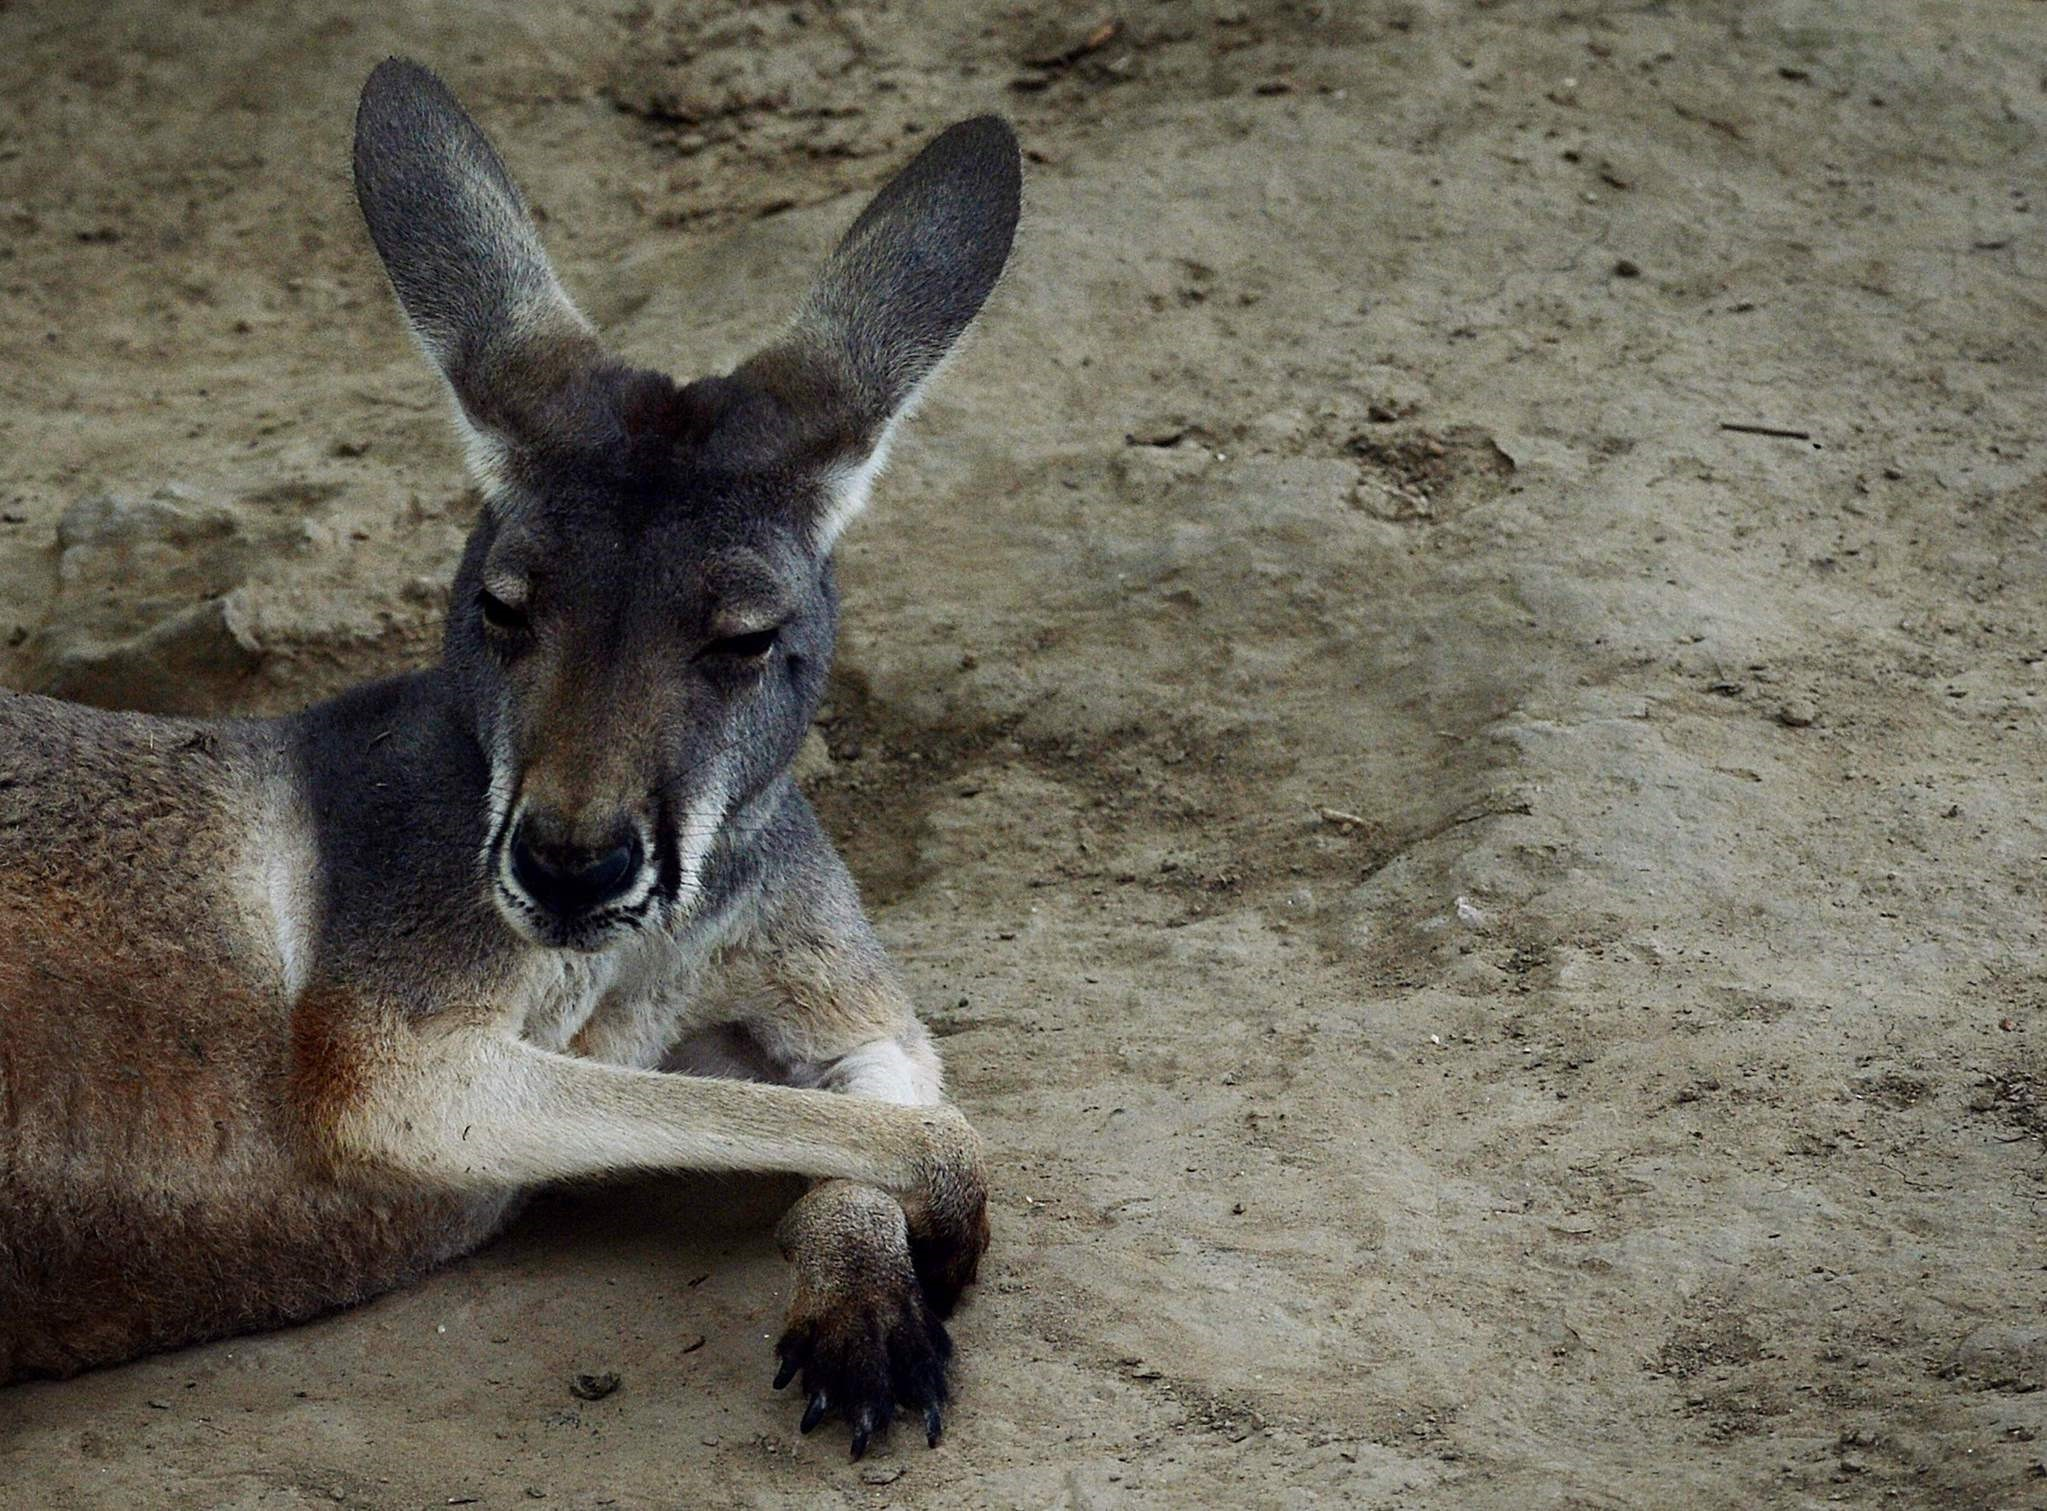 This file picture taken on June 24, 2013 shows an Australian kangaroo relaxing in its enclosure at the Beijing zoo. (AFP Photo)